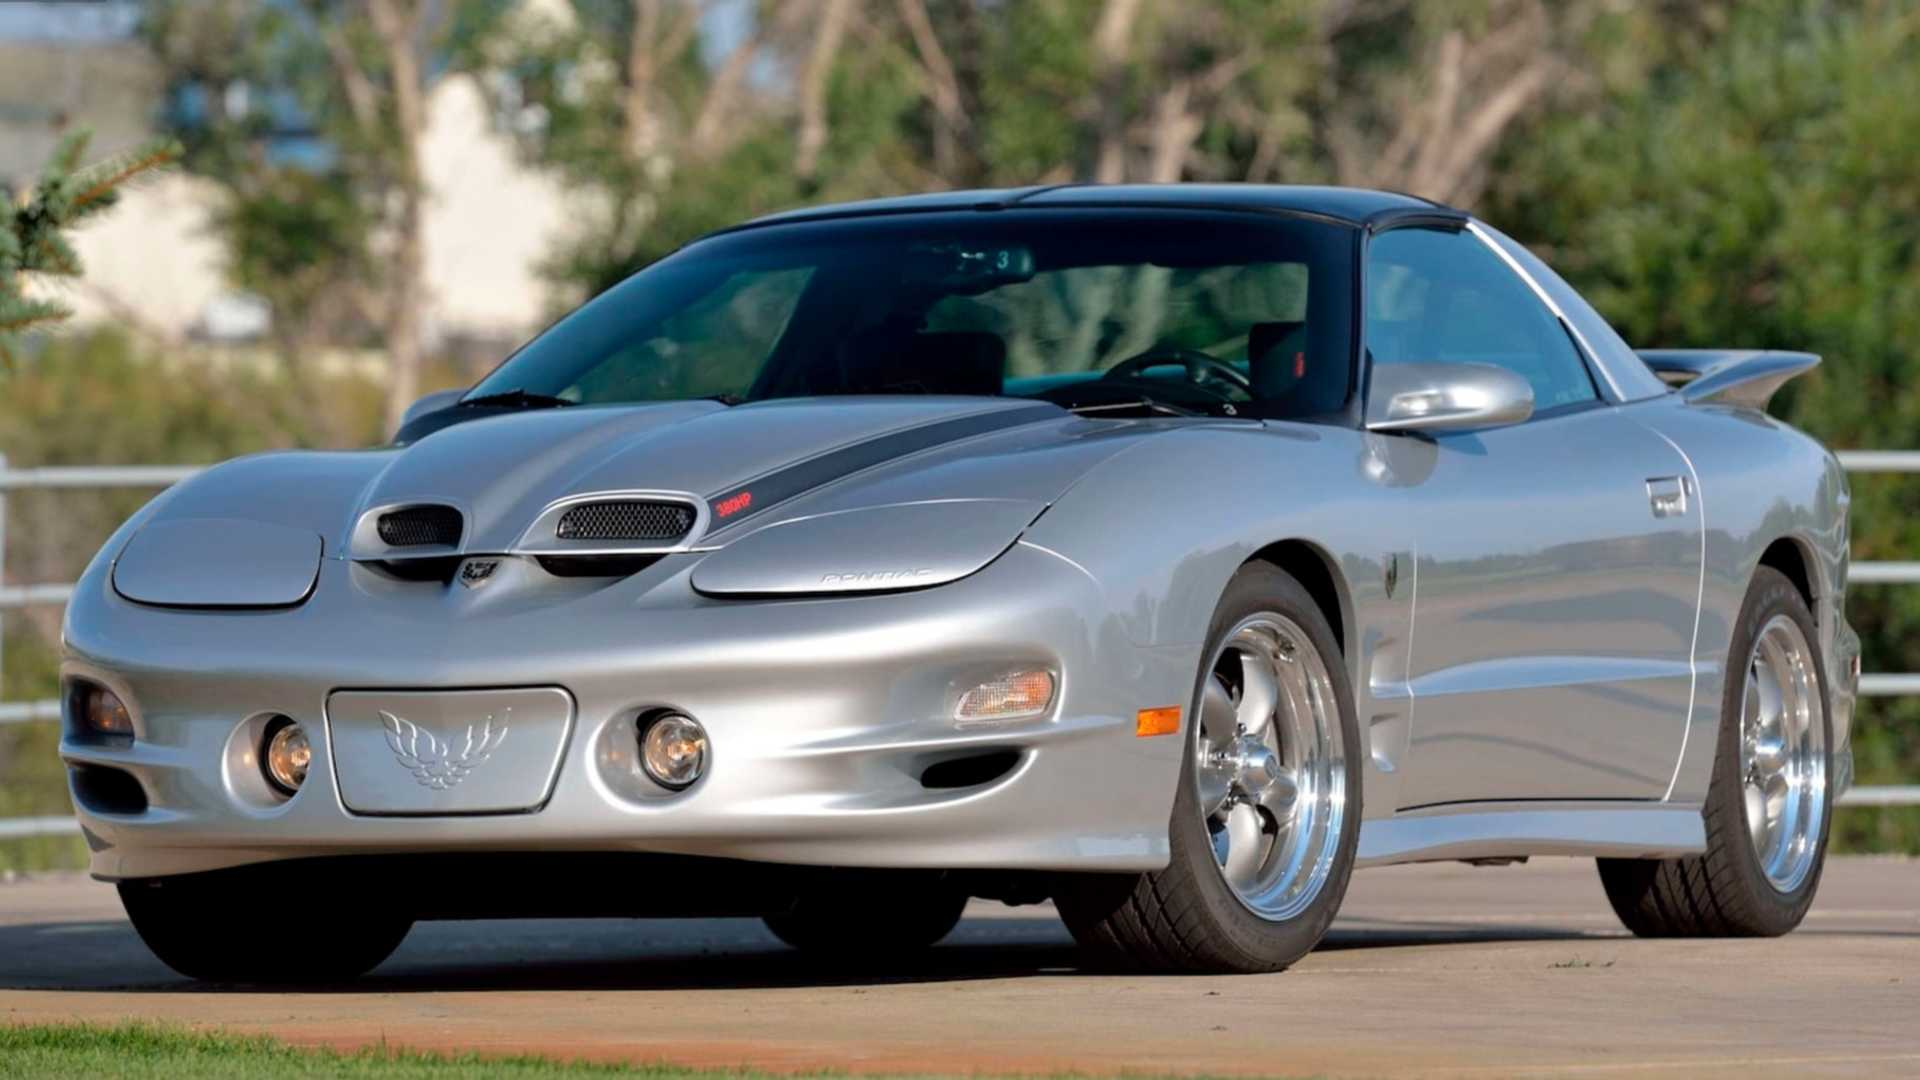 Rare Pontiac Trans Am GMMC Blackbird Heads To Auction With Few Miles